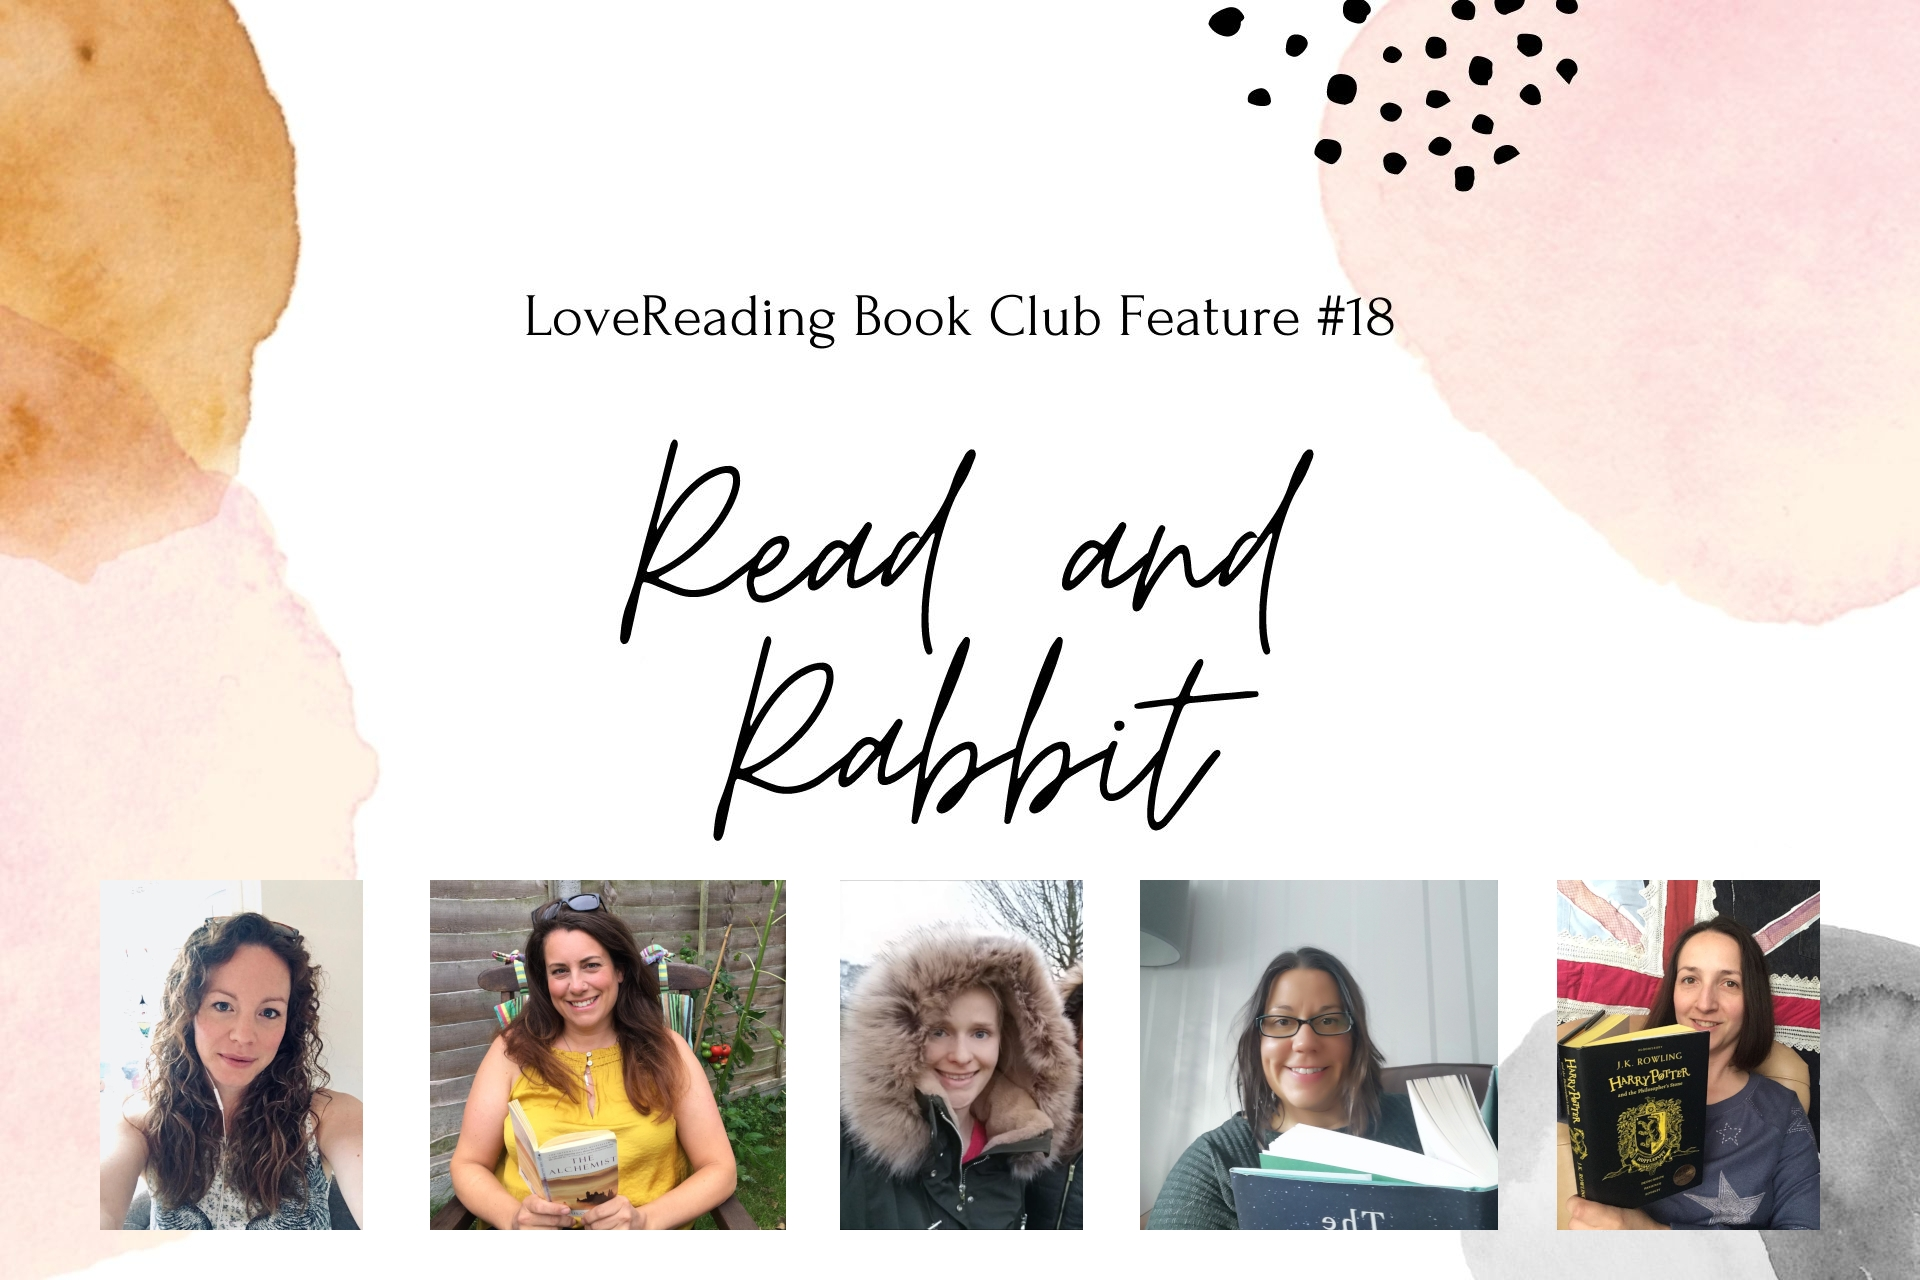 LoveReading Book Club Feature #18: Read and Rabbit